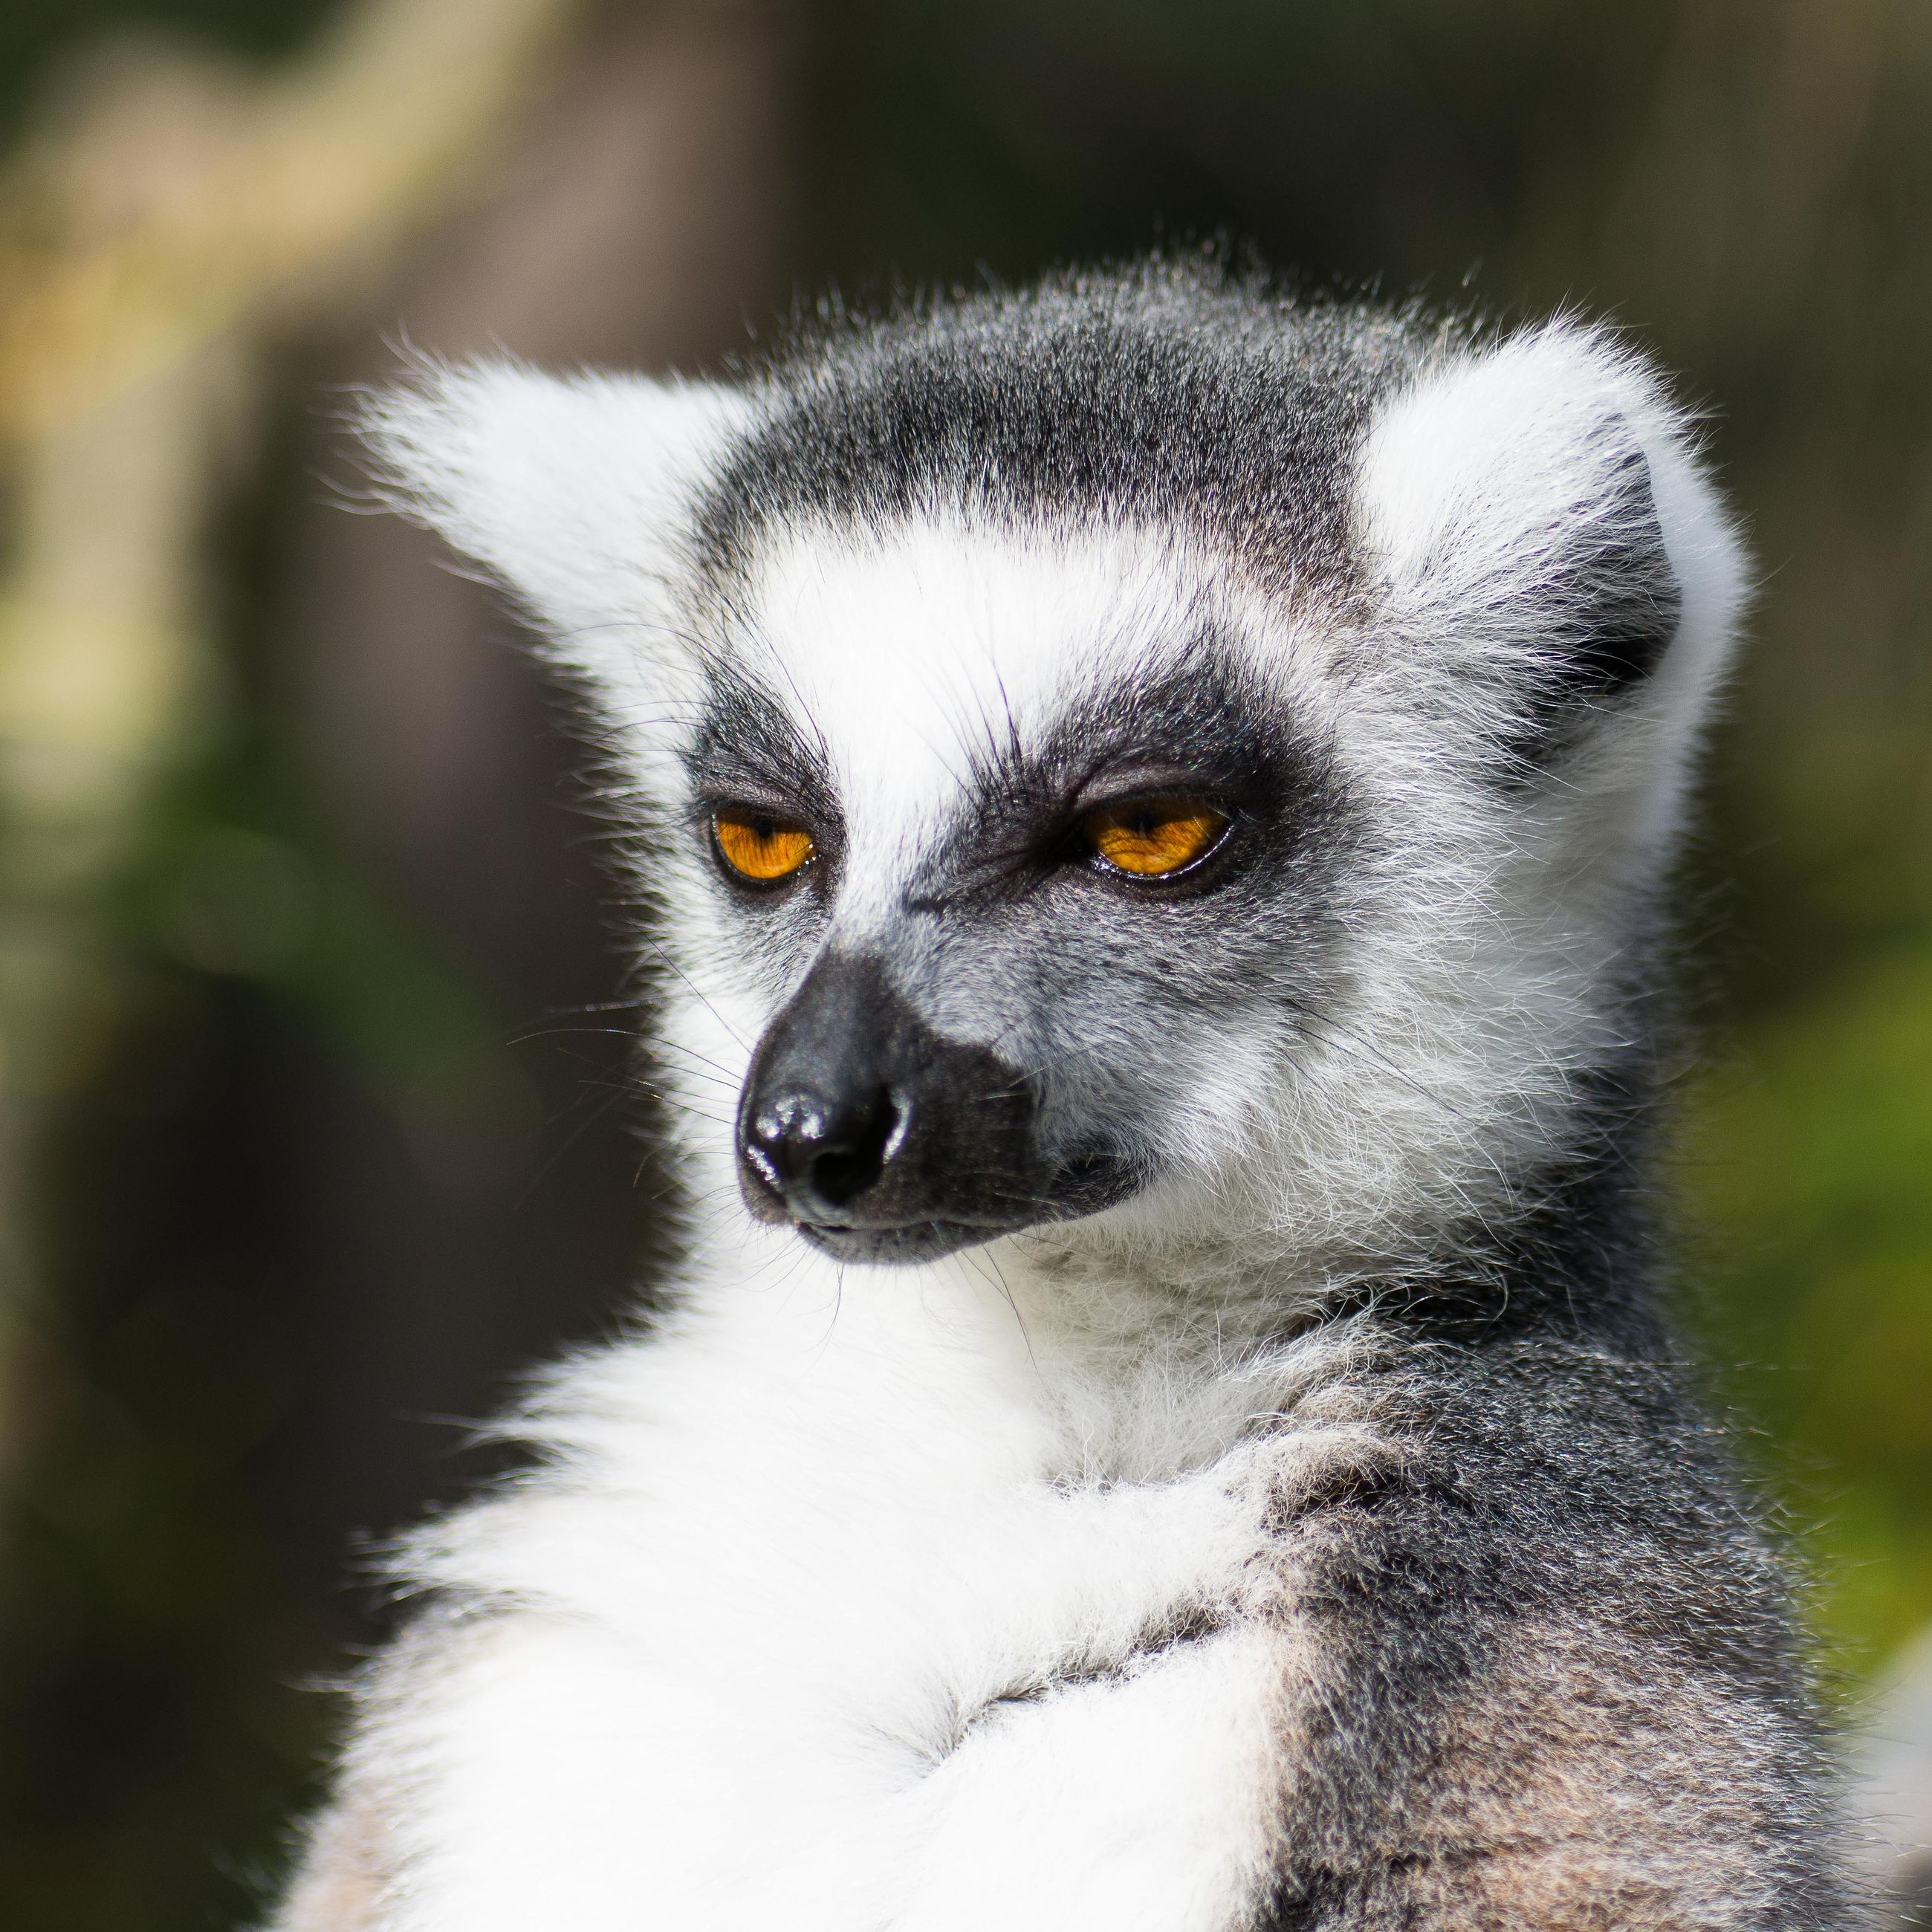 one animal, animal wildlife, animals in the wild, lemur, focus on foreground, mammal, close-up, vertebrate, day, no people, portrait, primate, looking, outdoors, looking away, nature, yellow eyes, animal eye